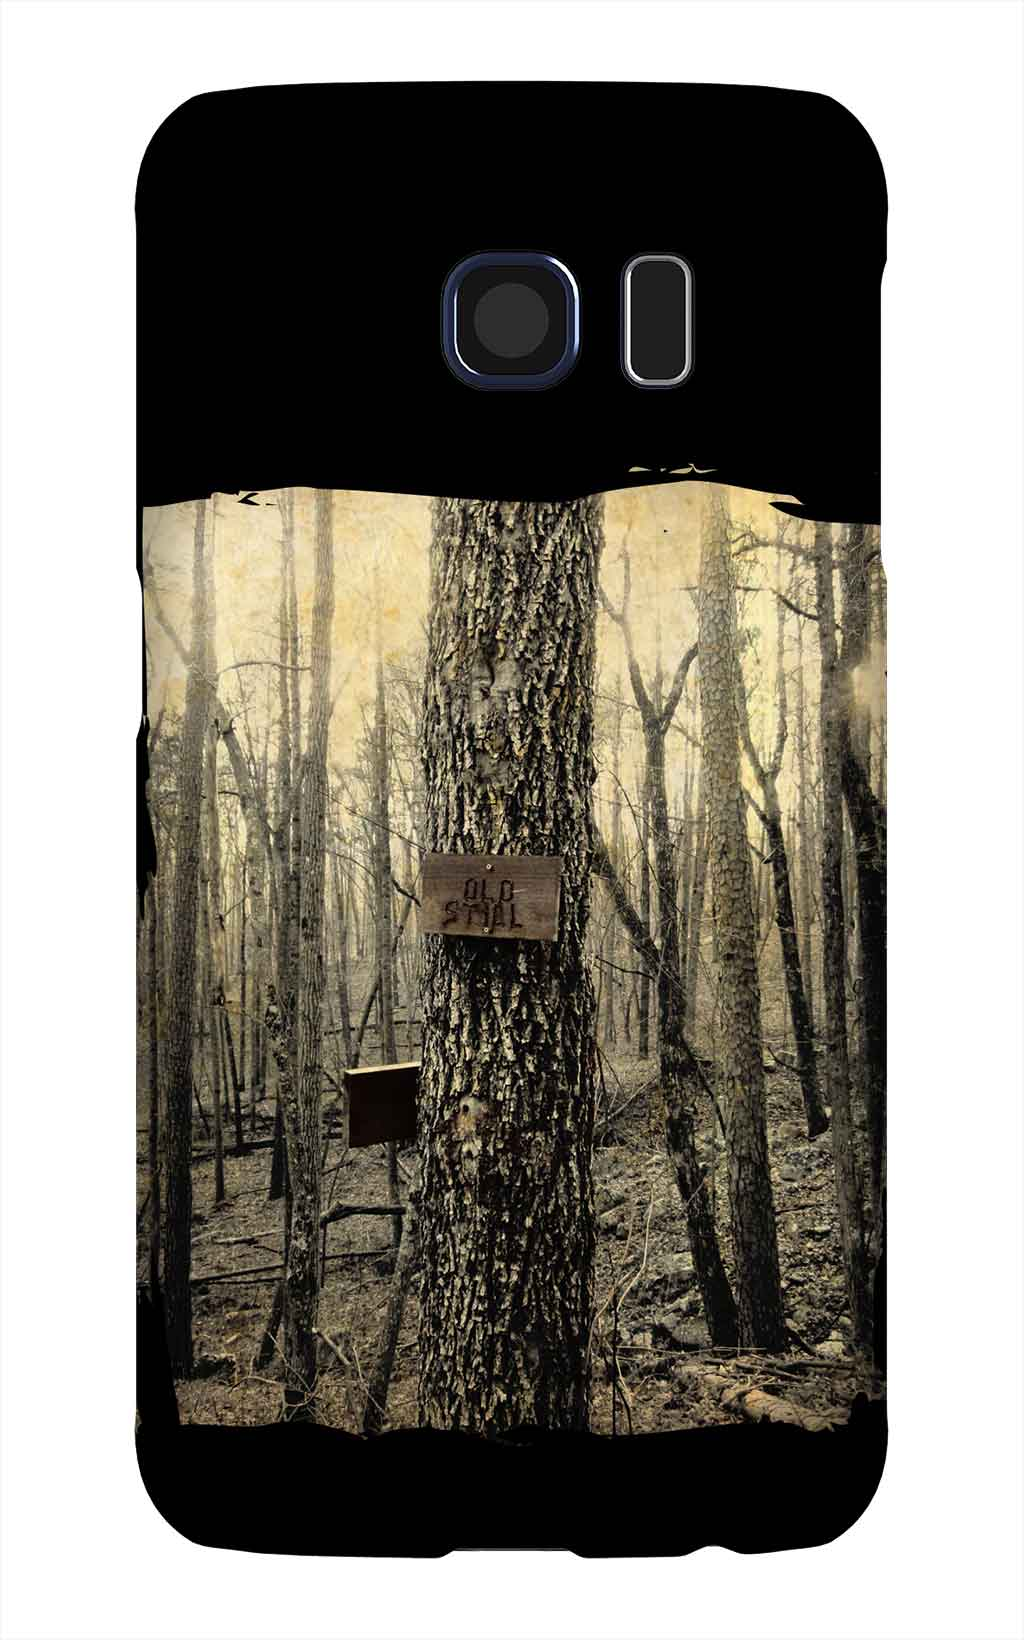 Product, Cellphone Case: Old Still – Tree with sign that says Old Still in Lake Guntersville State Park, Alabama